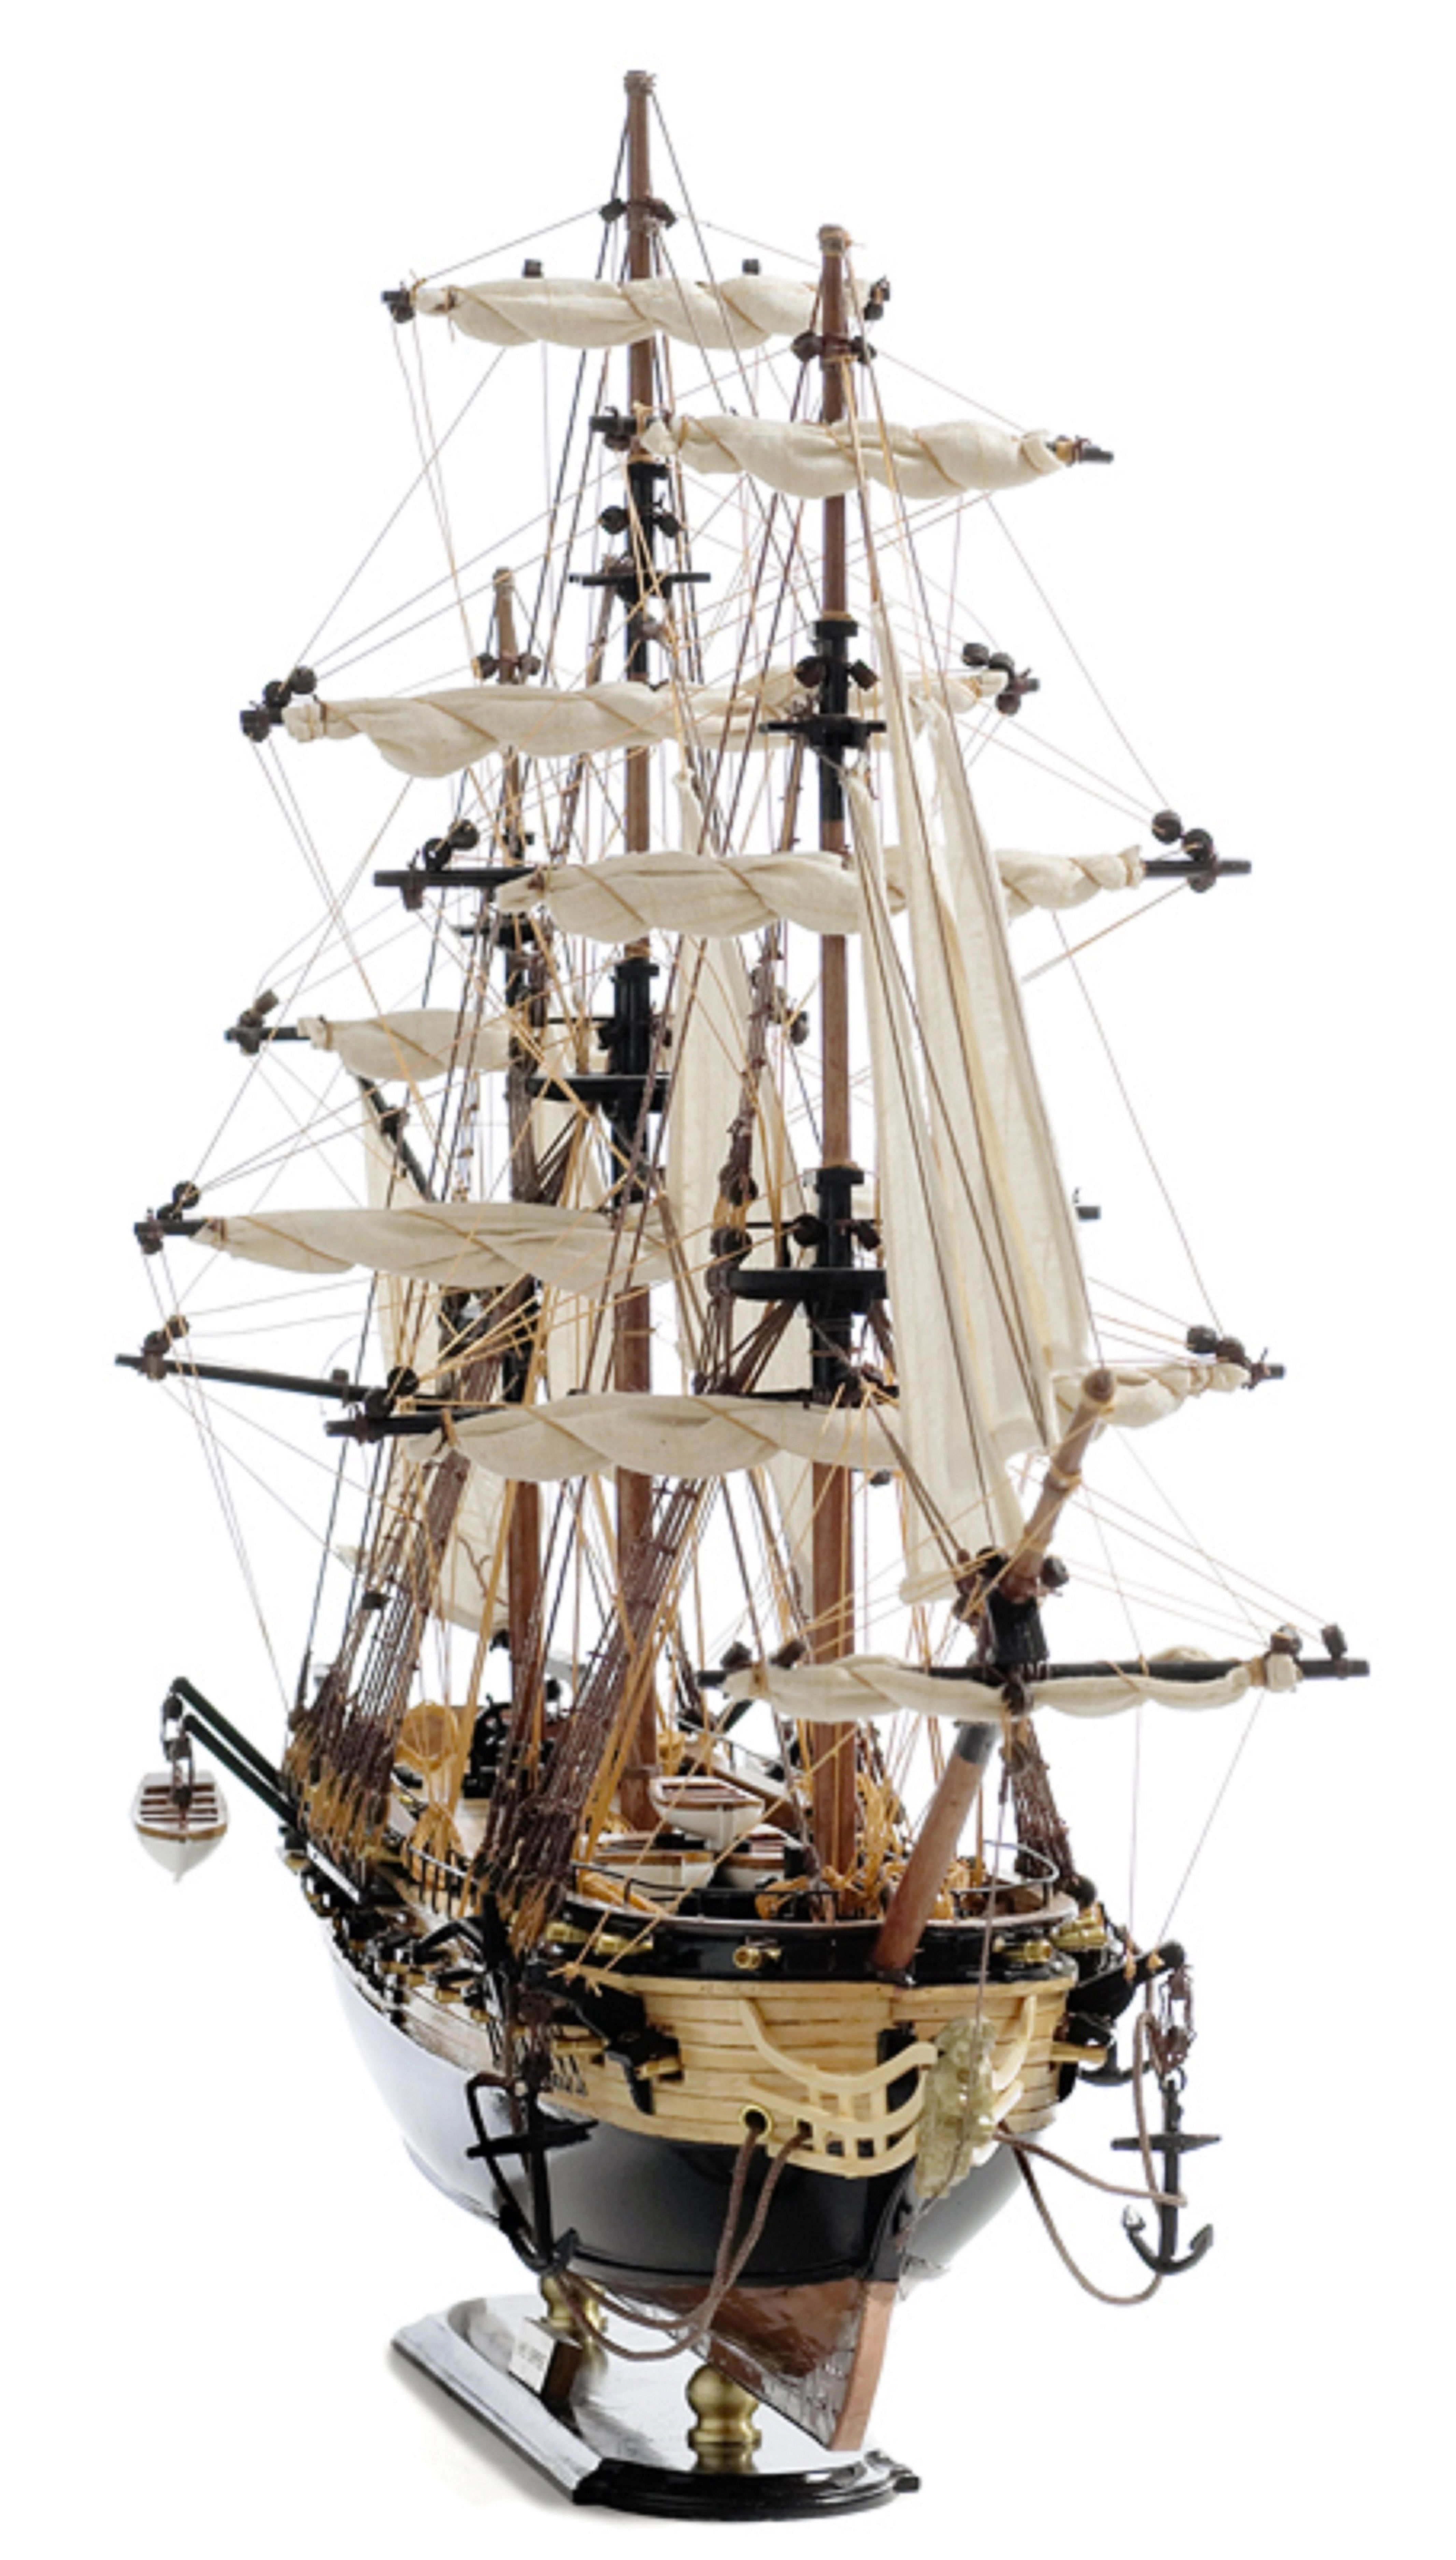 488-8348-HMS-Surprise-Model-Ship-Superior-Range